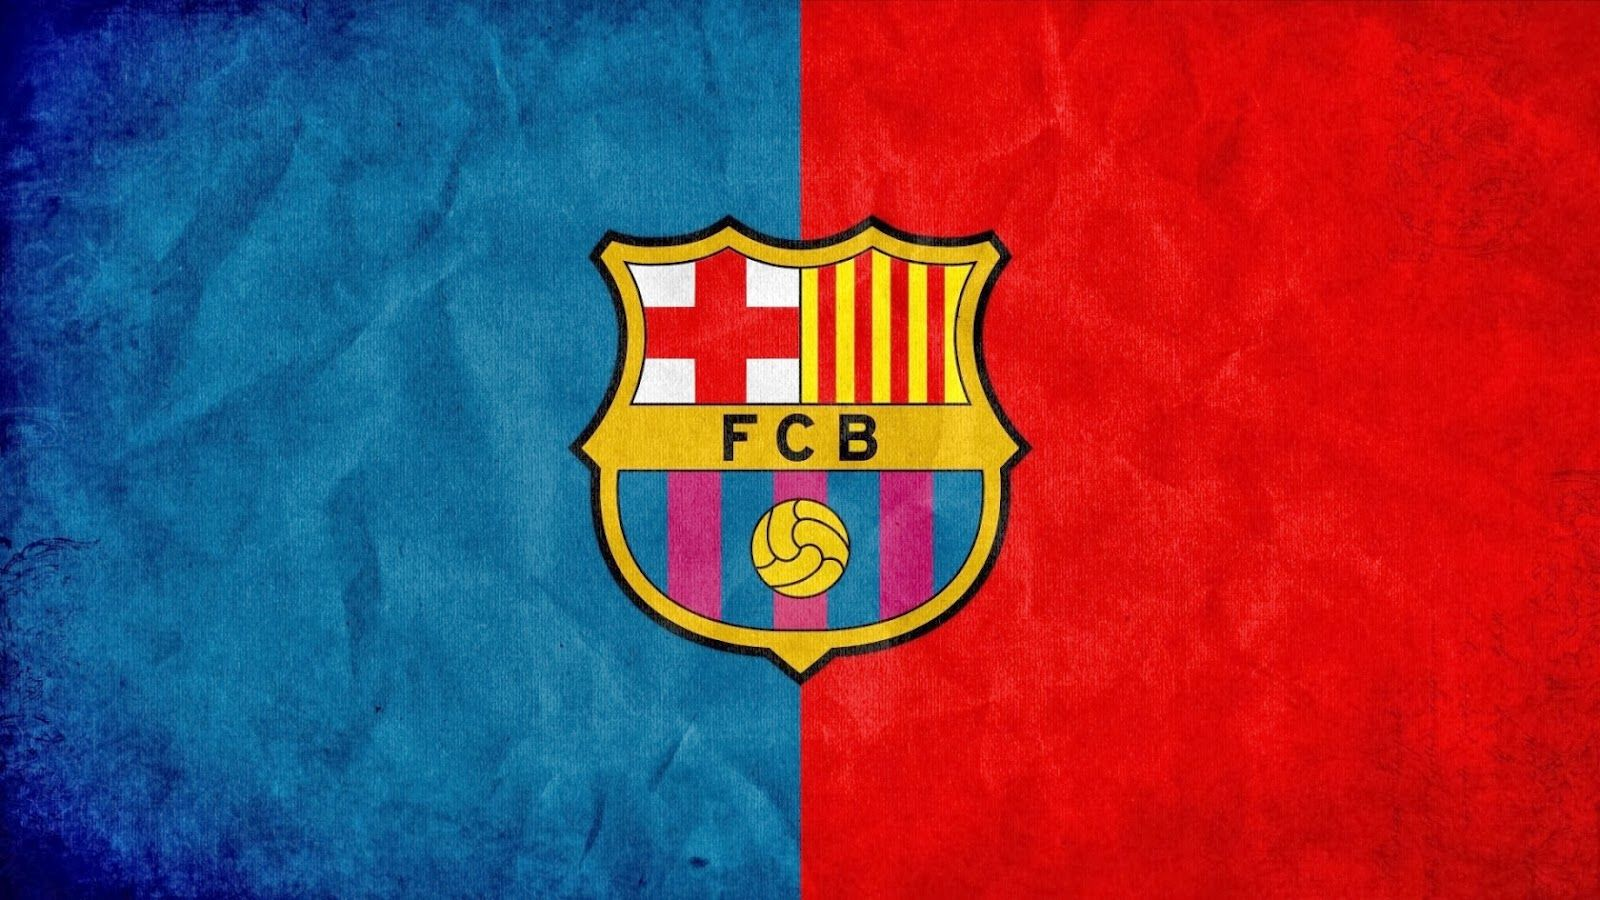 HD Barcelona Wallpapers And Photos City Imagenes De